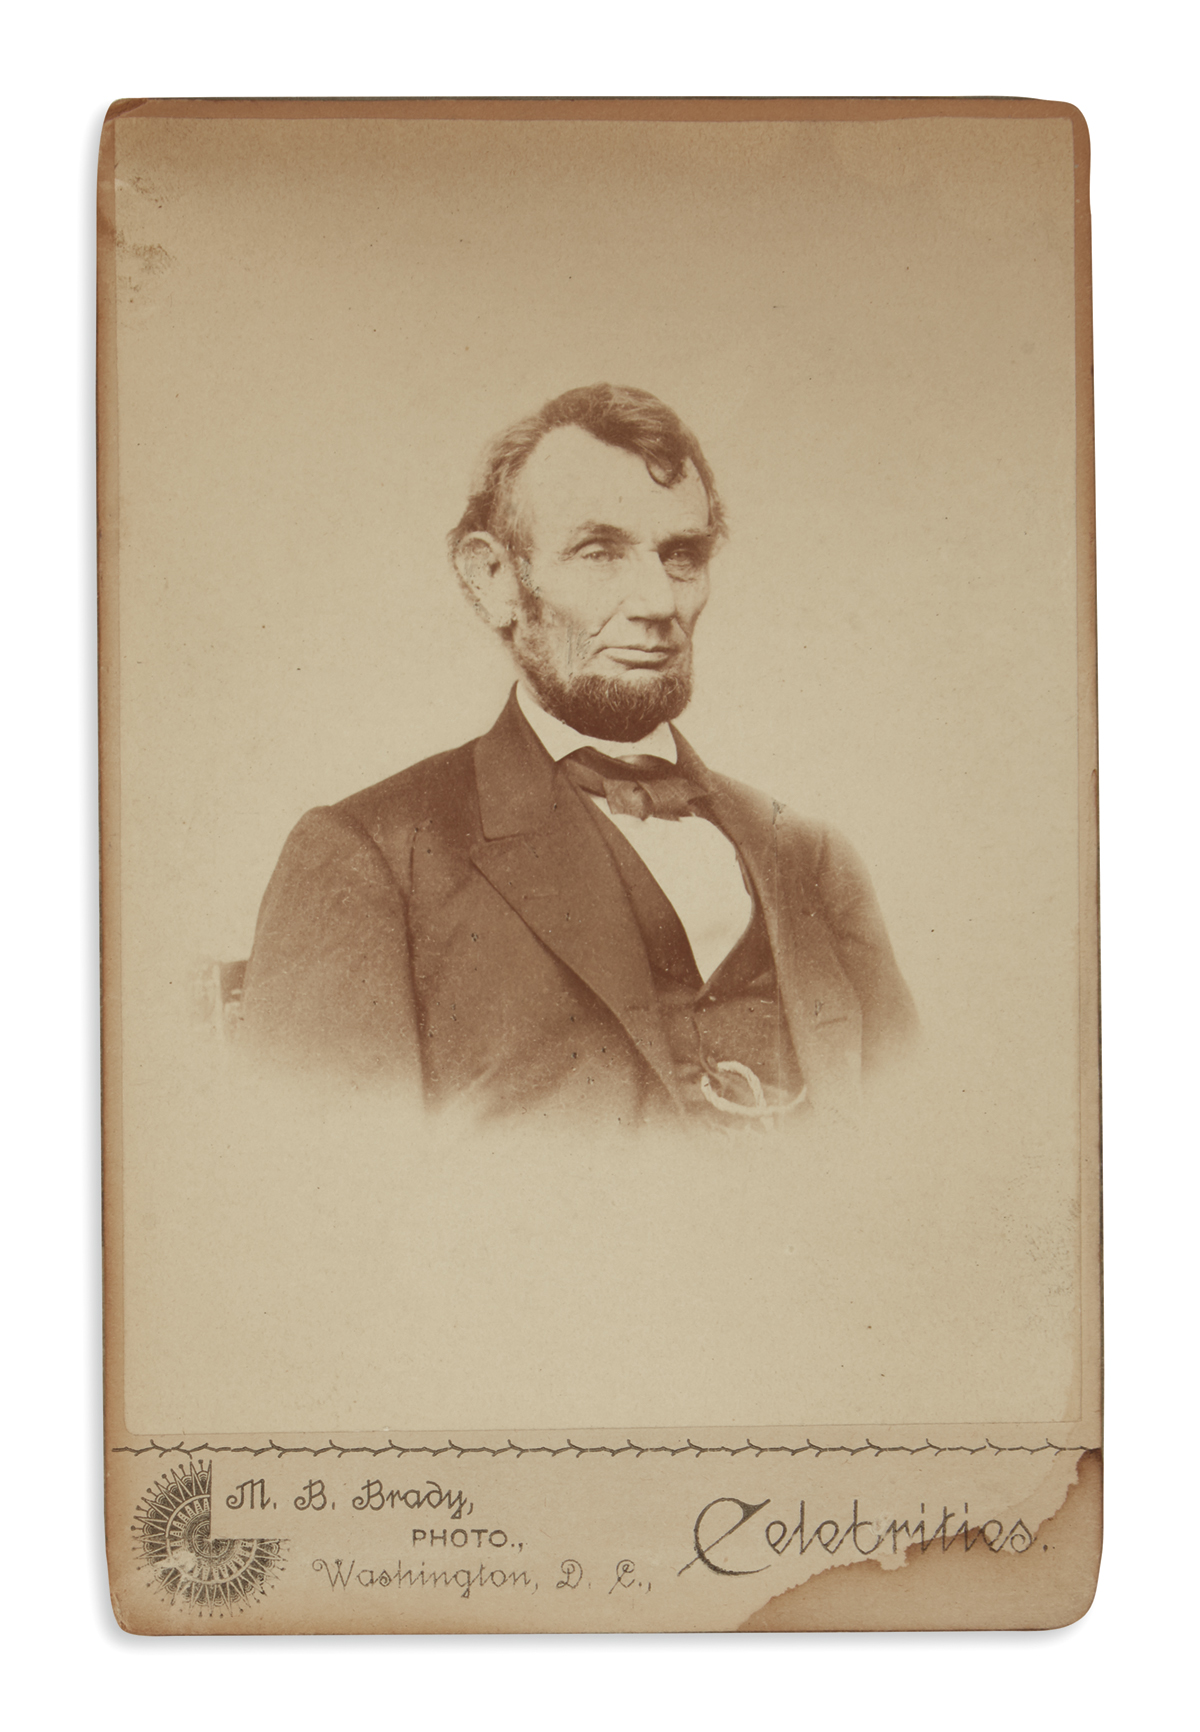 (PHOTOGRAPHY)-Group-of-10-photographs-of-Lincoln-and-related